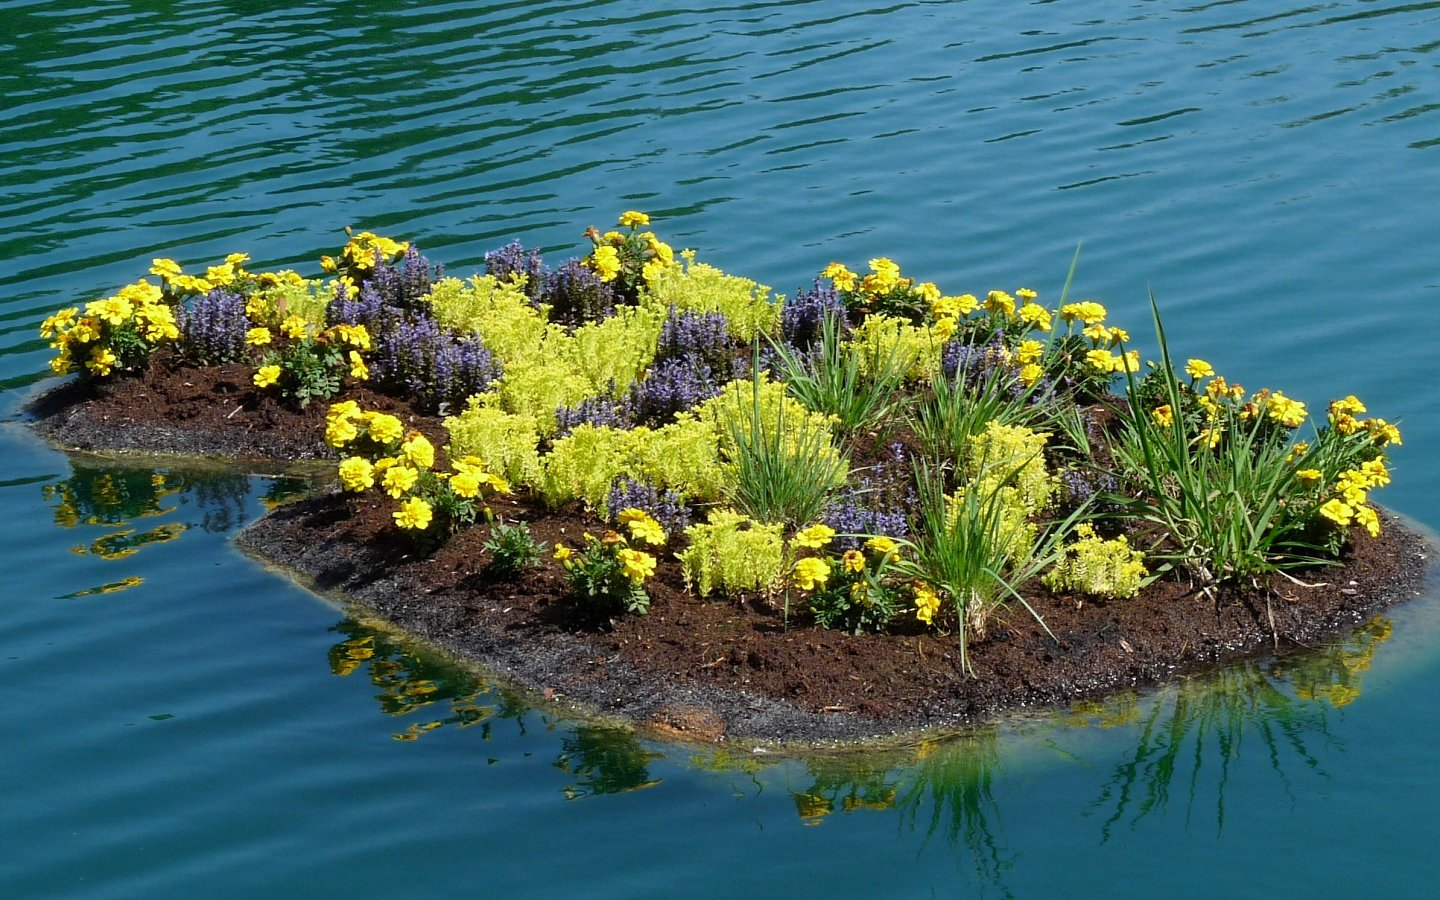 Ornamental, terrestrial flowers on floating island